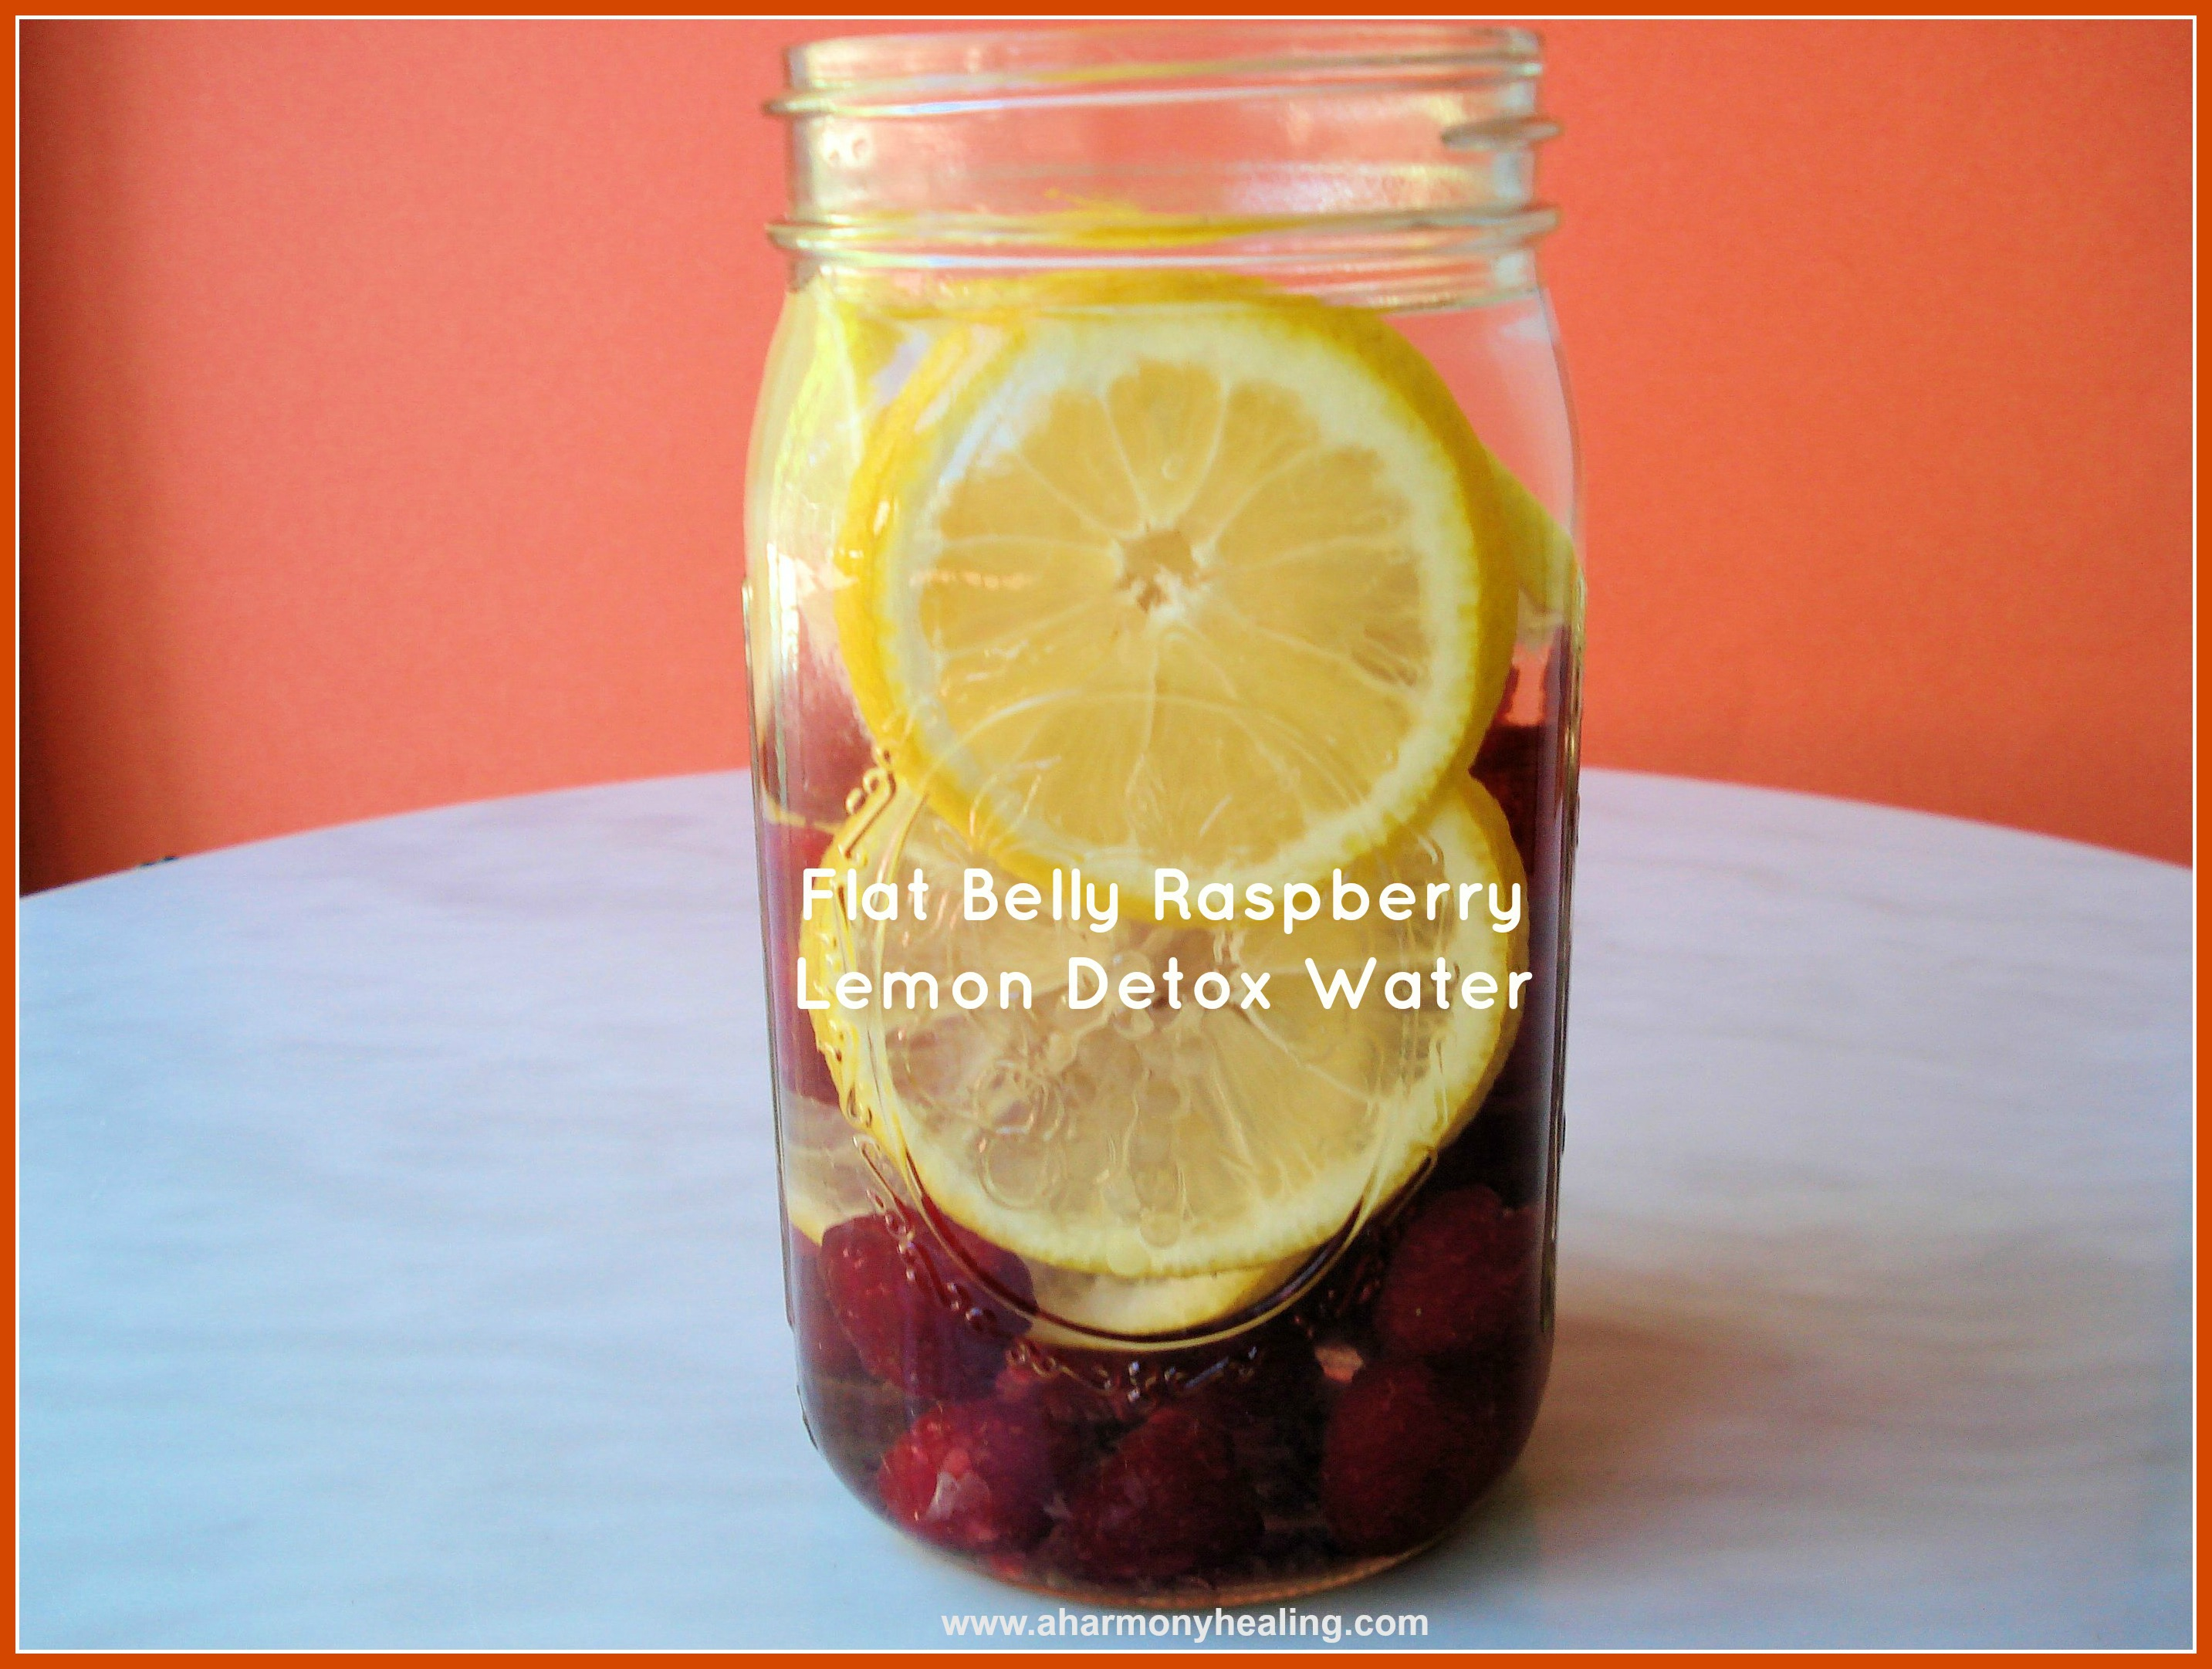 Flat belly raspberry lemon detox water feature pic 1007